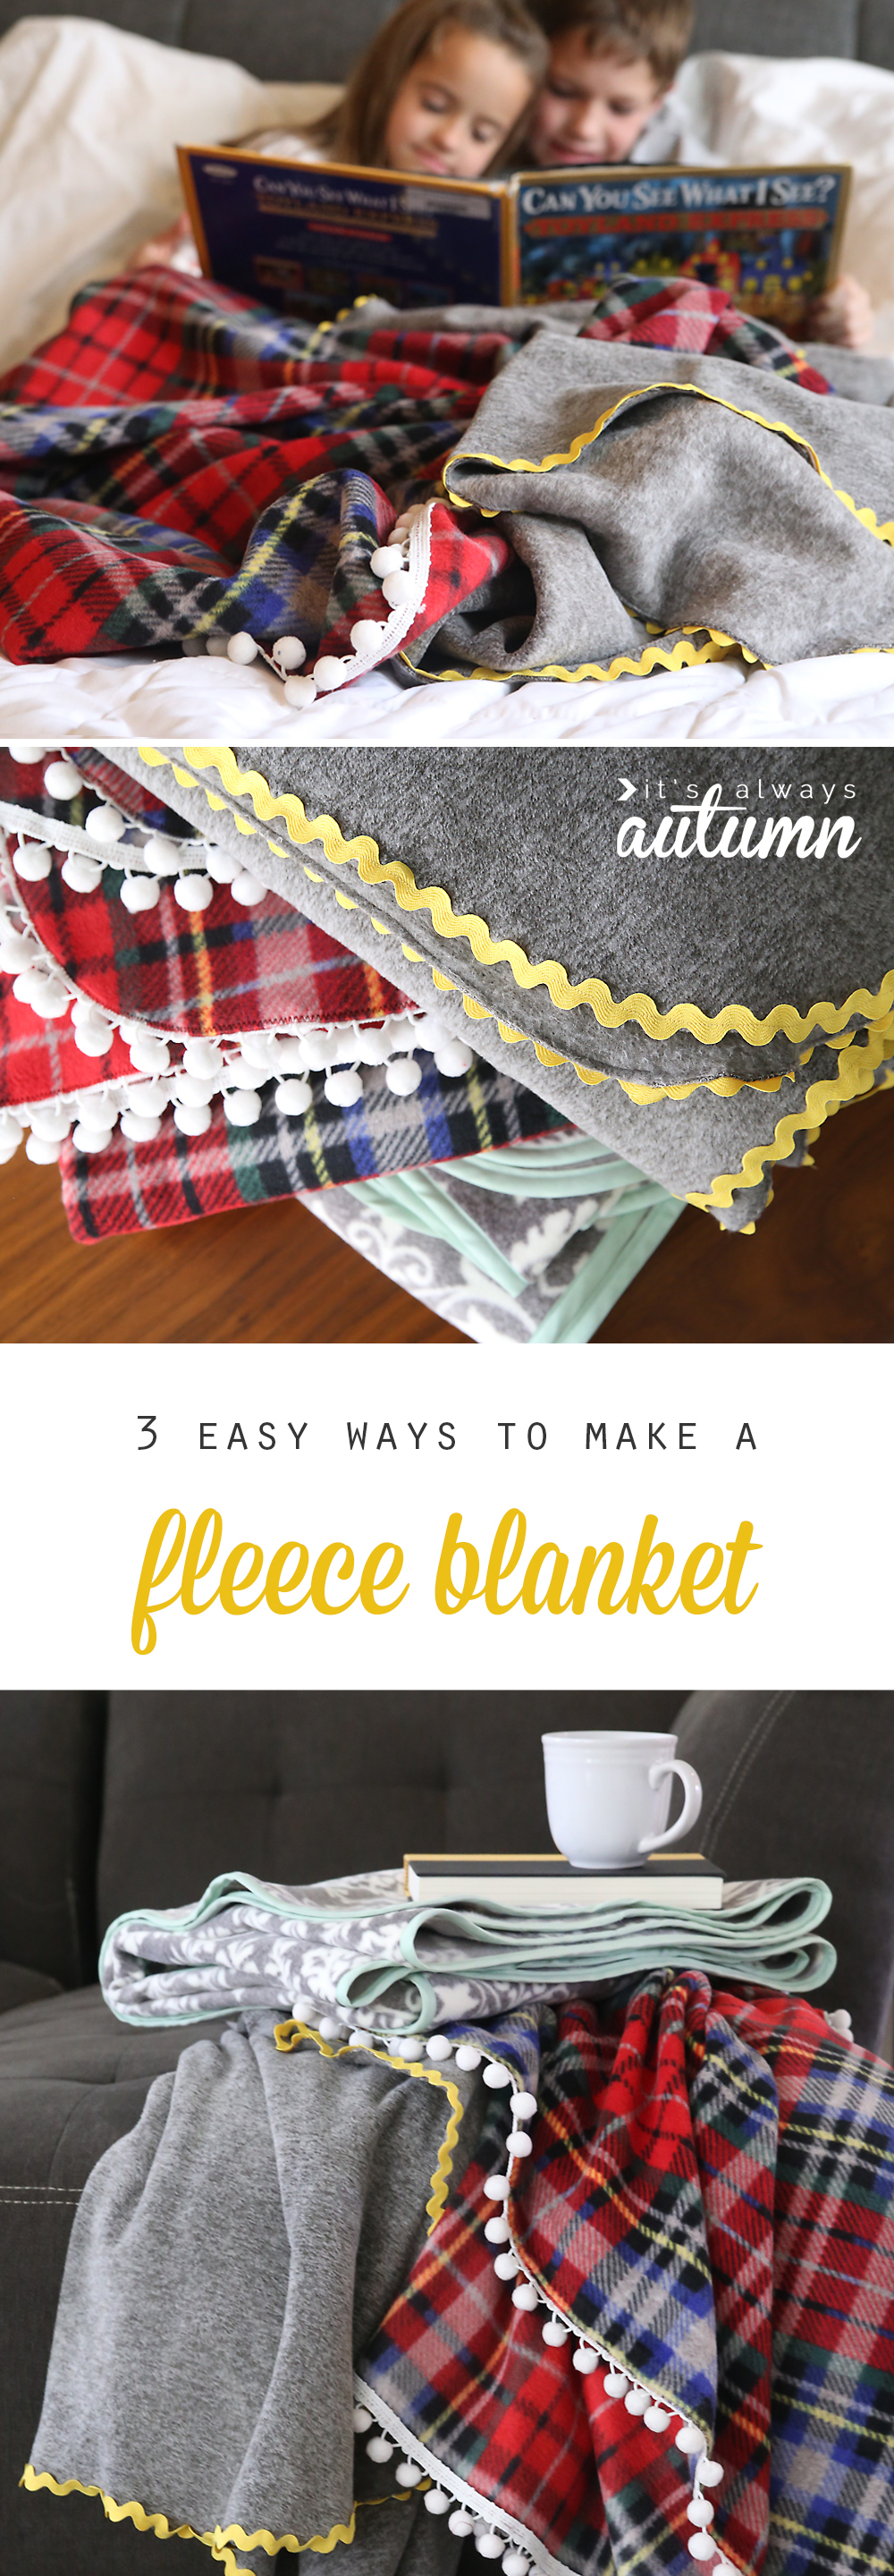 how-to-make-deluxe-fleece-blankets-easy-diy-handmade-christmas-gift-guys-sew-pinnable (1)